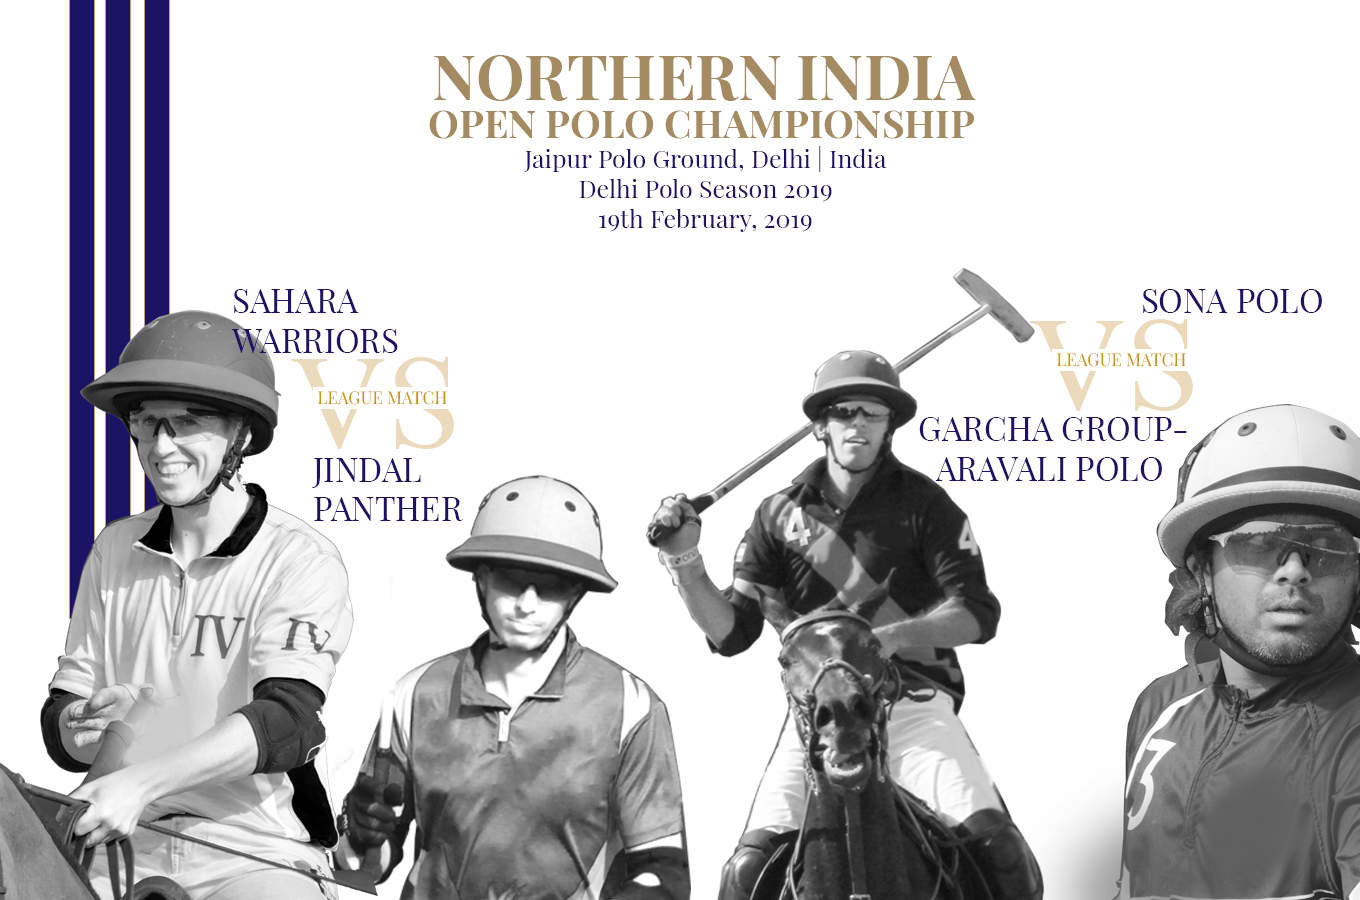 Northern India Open Polo Championship